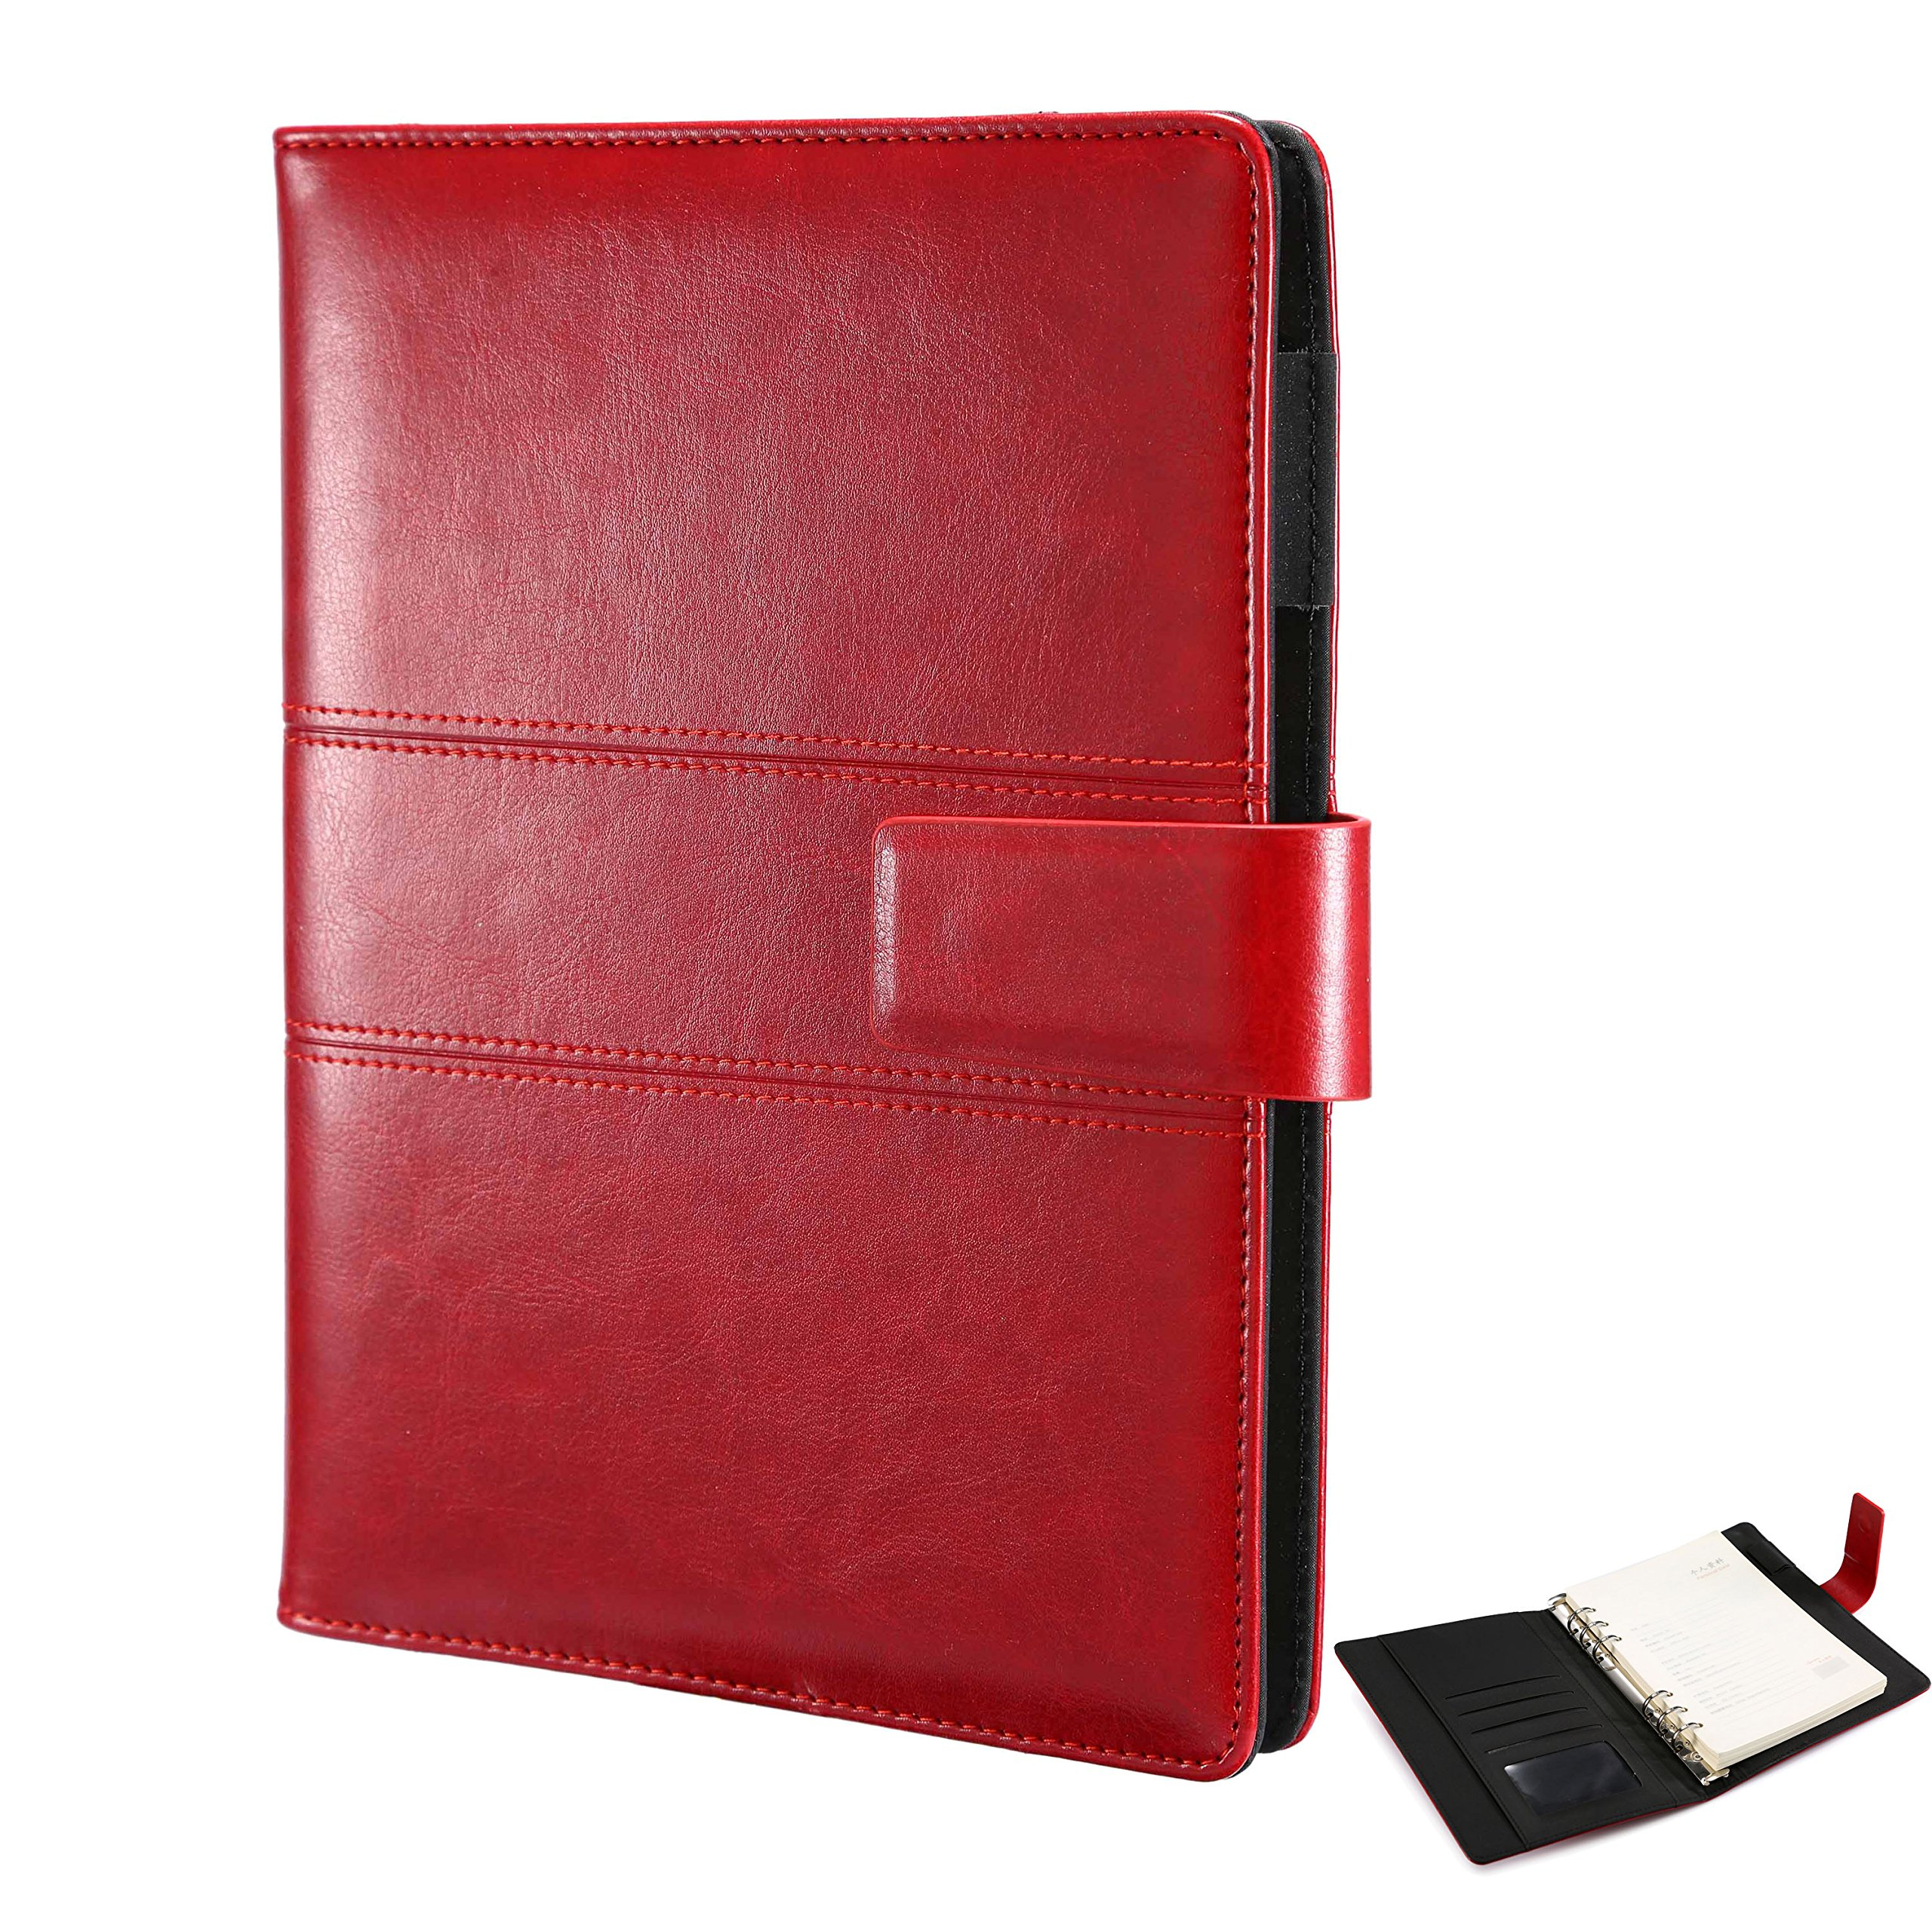 A5 Softcover Leather Ring Binders Writing Notebook,Spiral-Bound Journal Executive A5 Diary with Magnet Closure,Lined Pages,Perfect for Office Business School